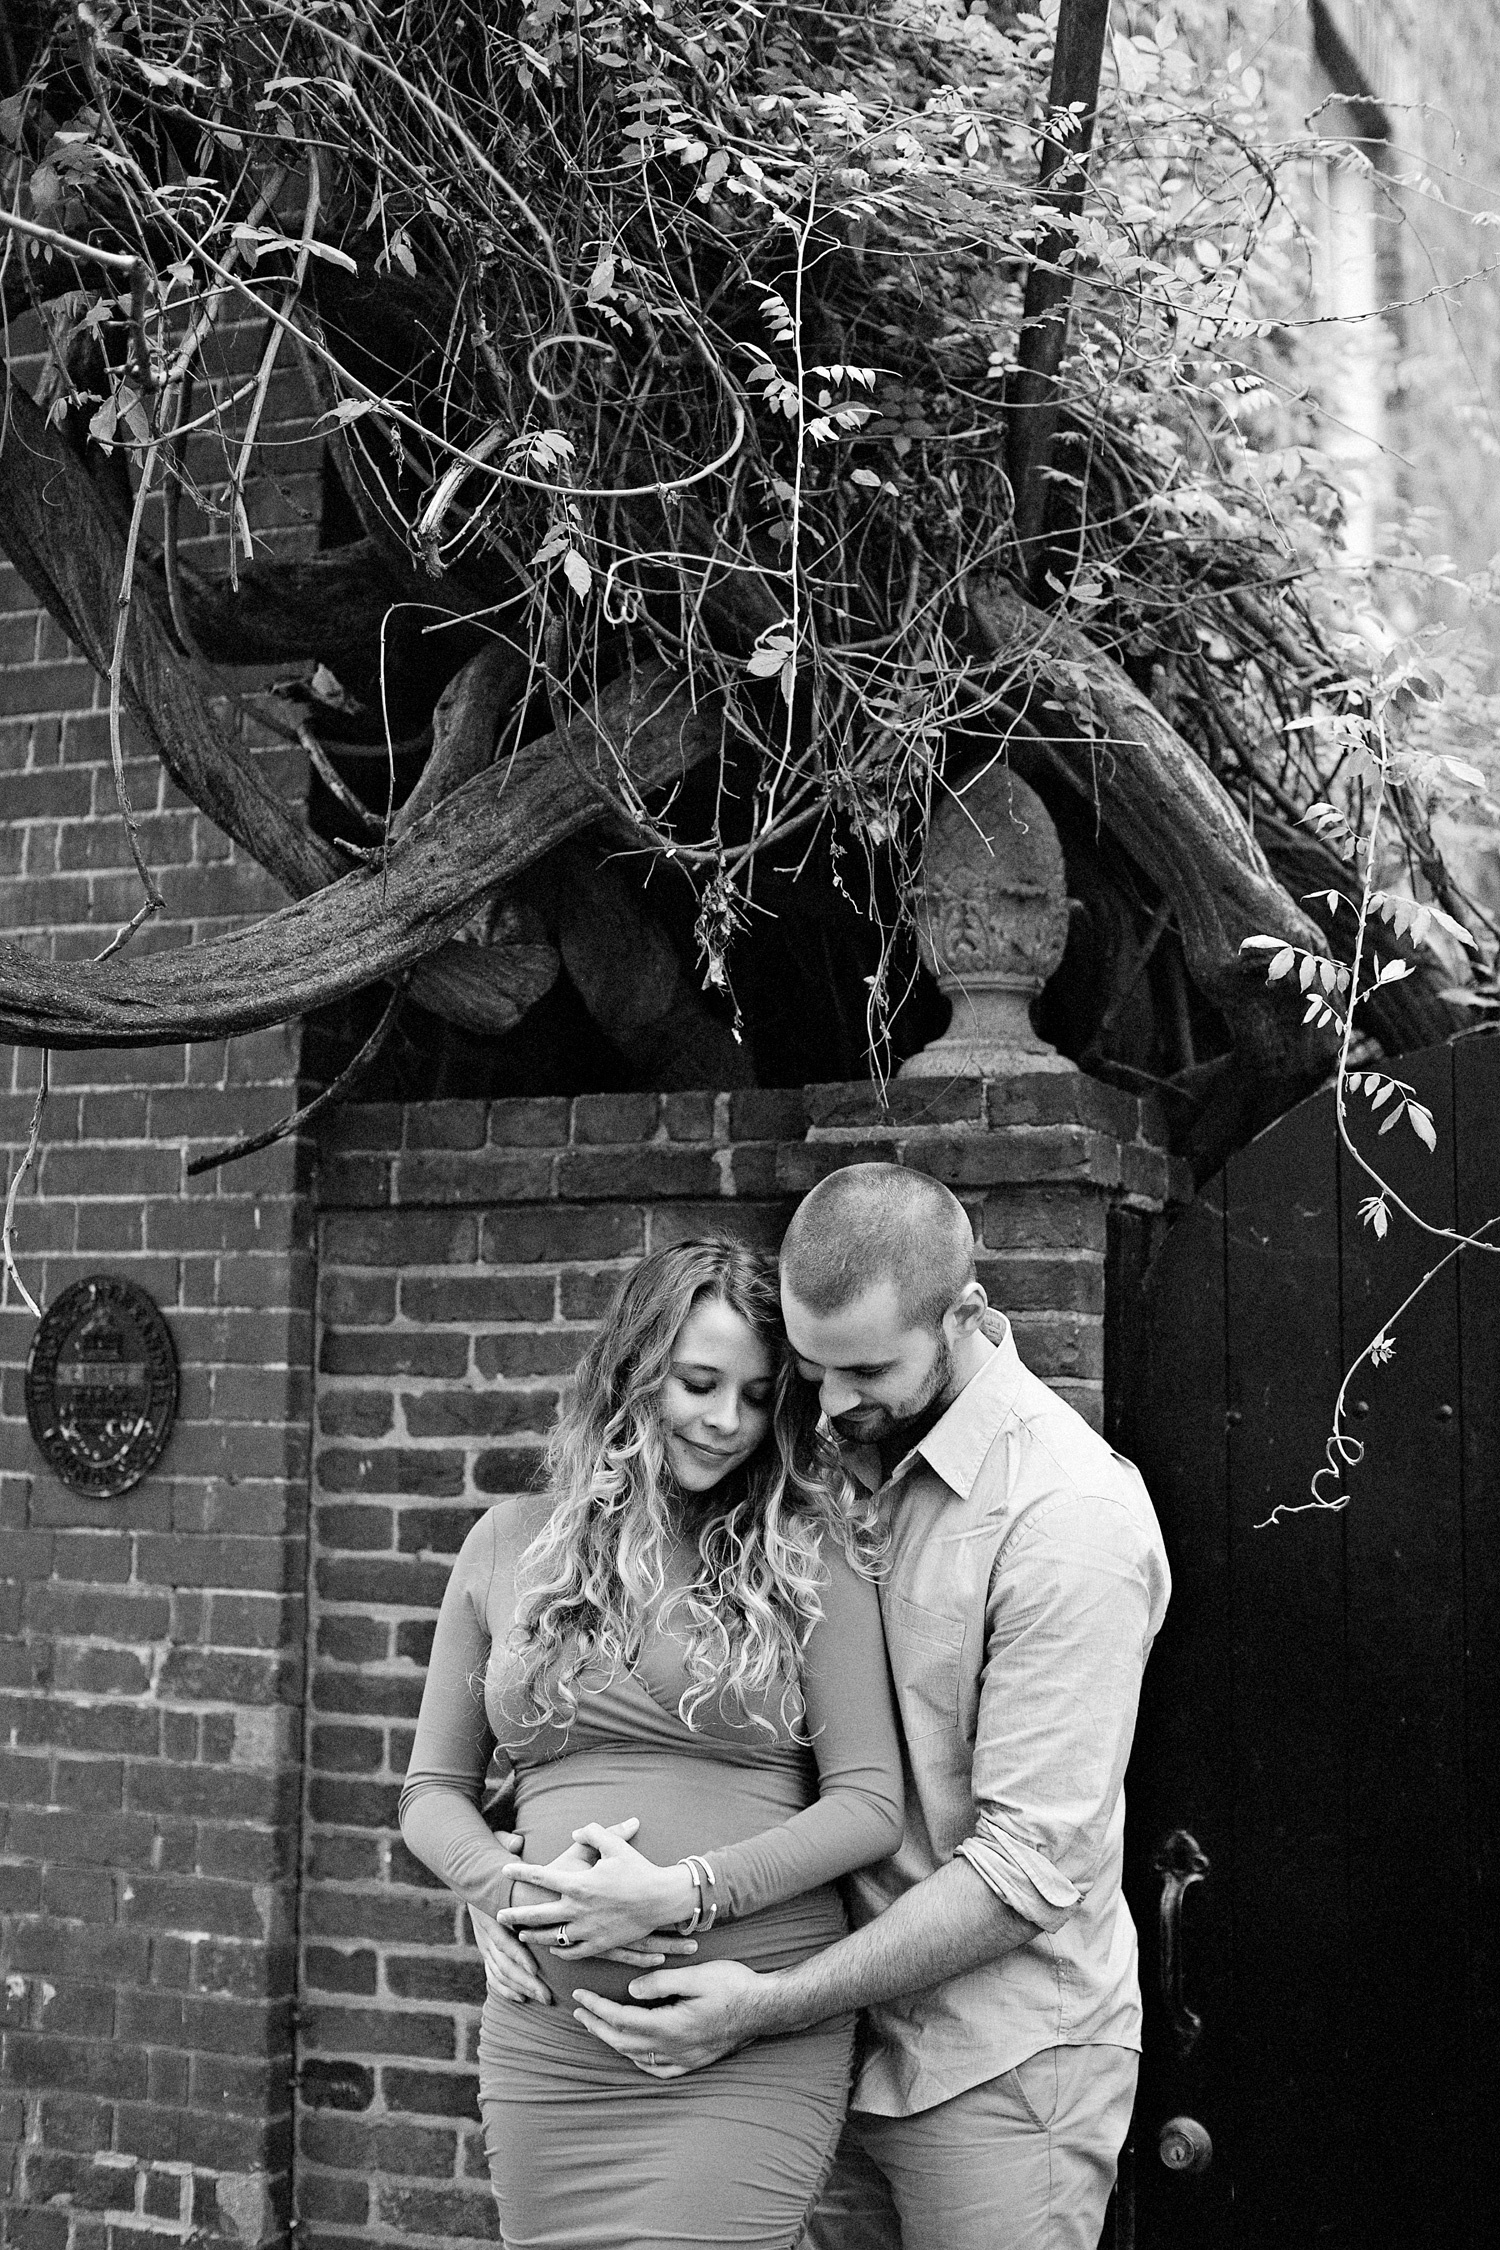 515-old-town-alexandria-maternity-photography.jpg